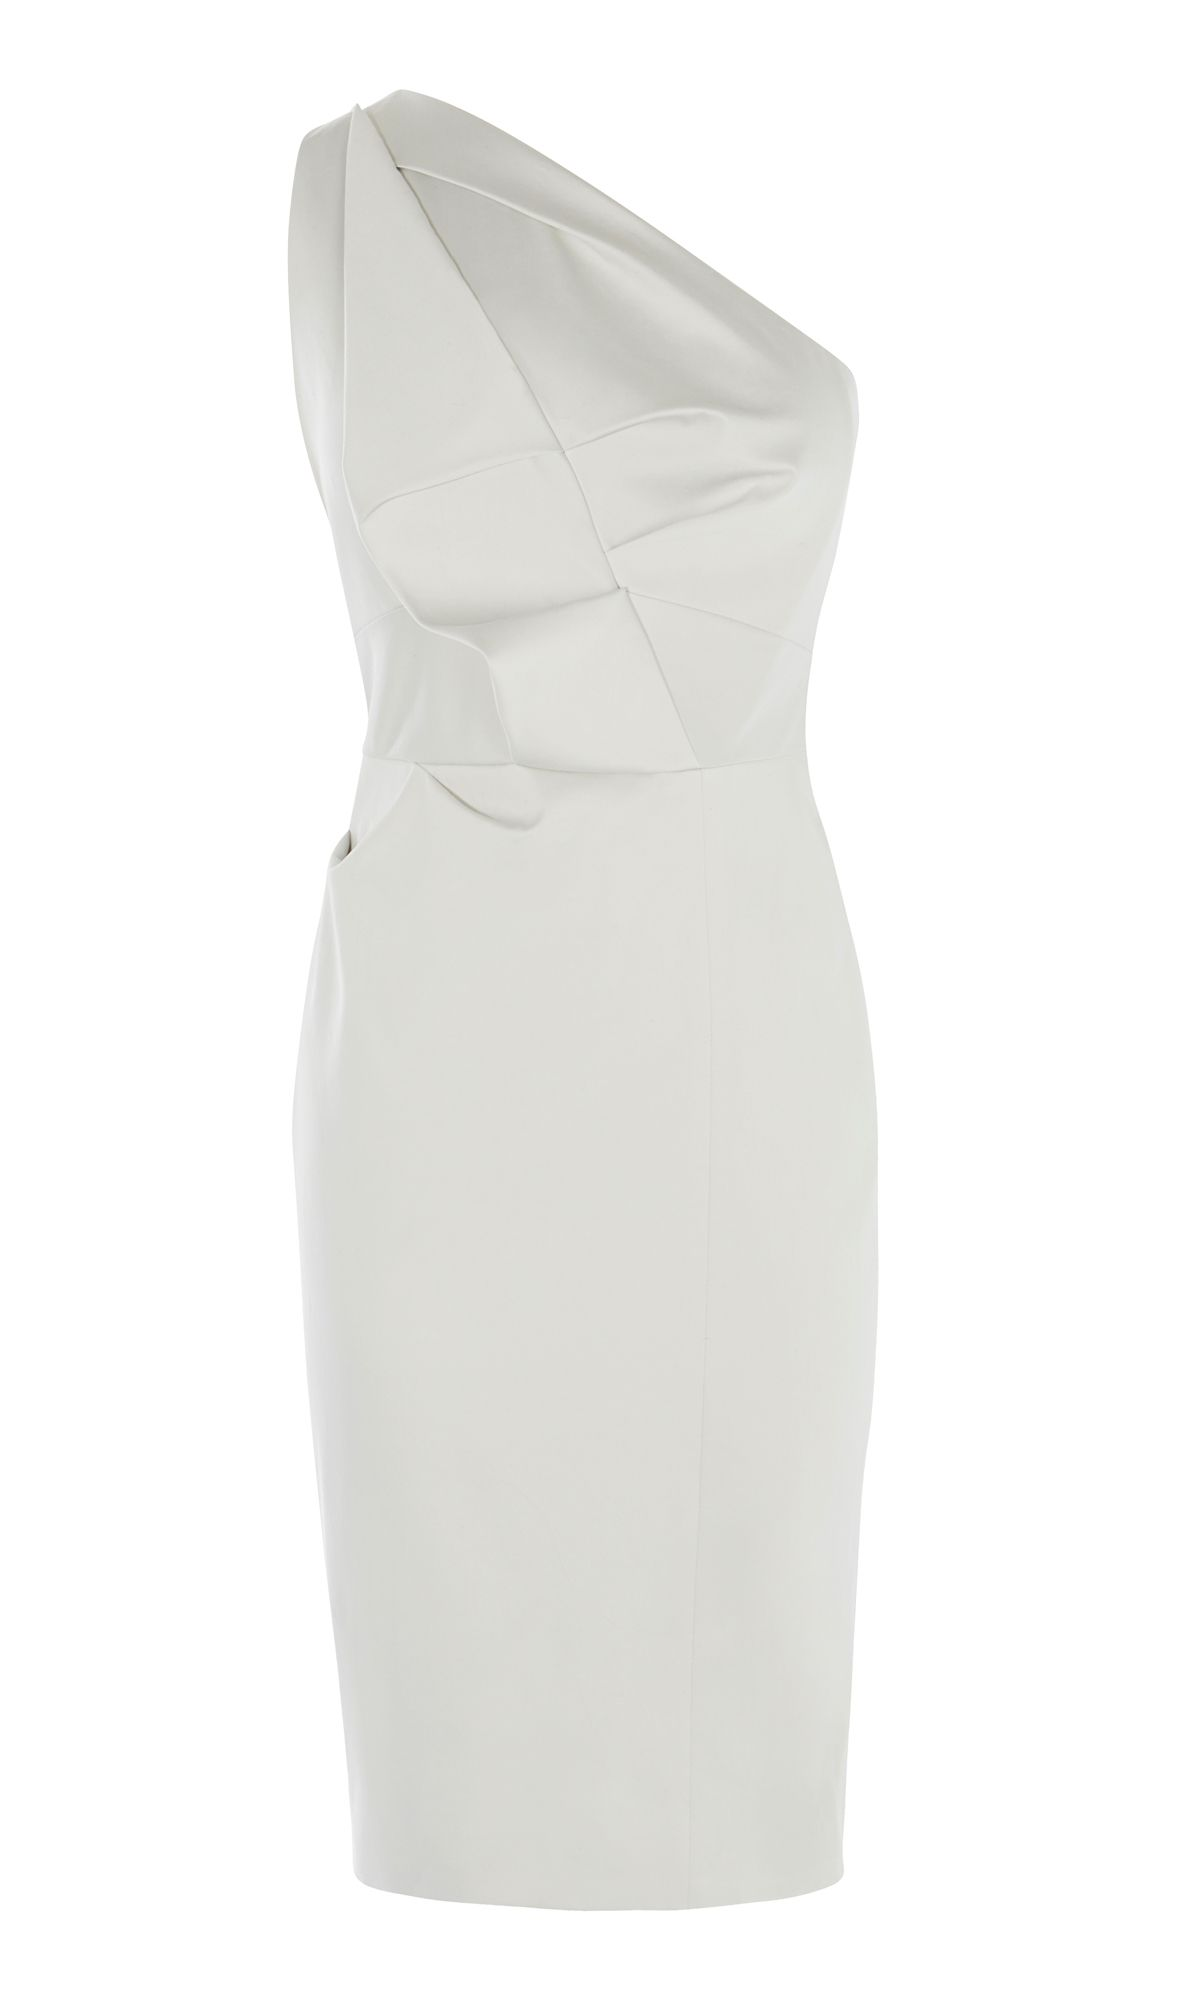 Karen Millen One-Shoulder Pencil Dress, Light Grey